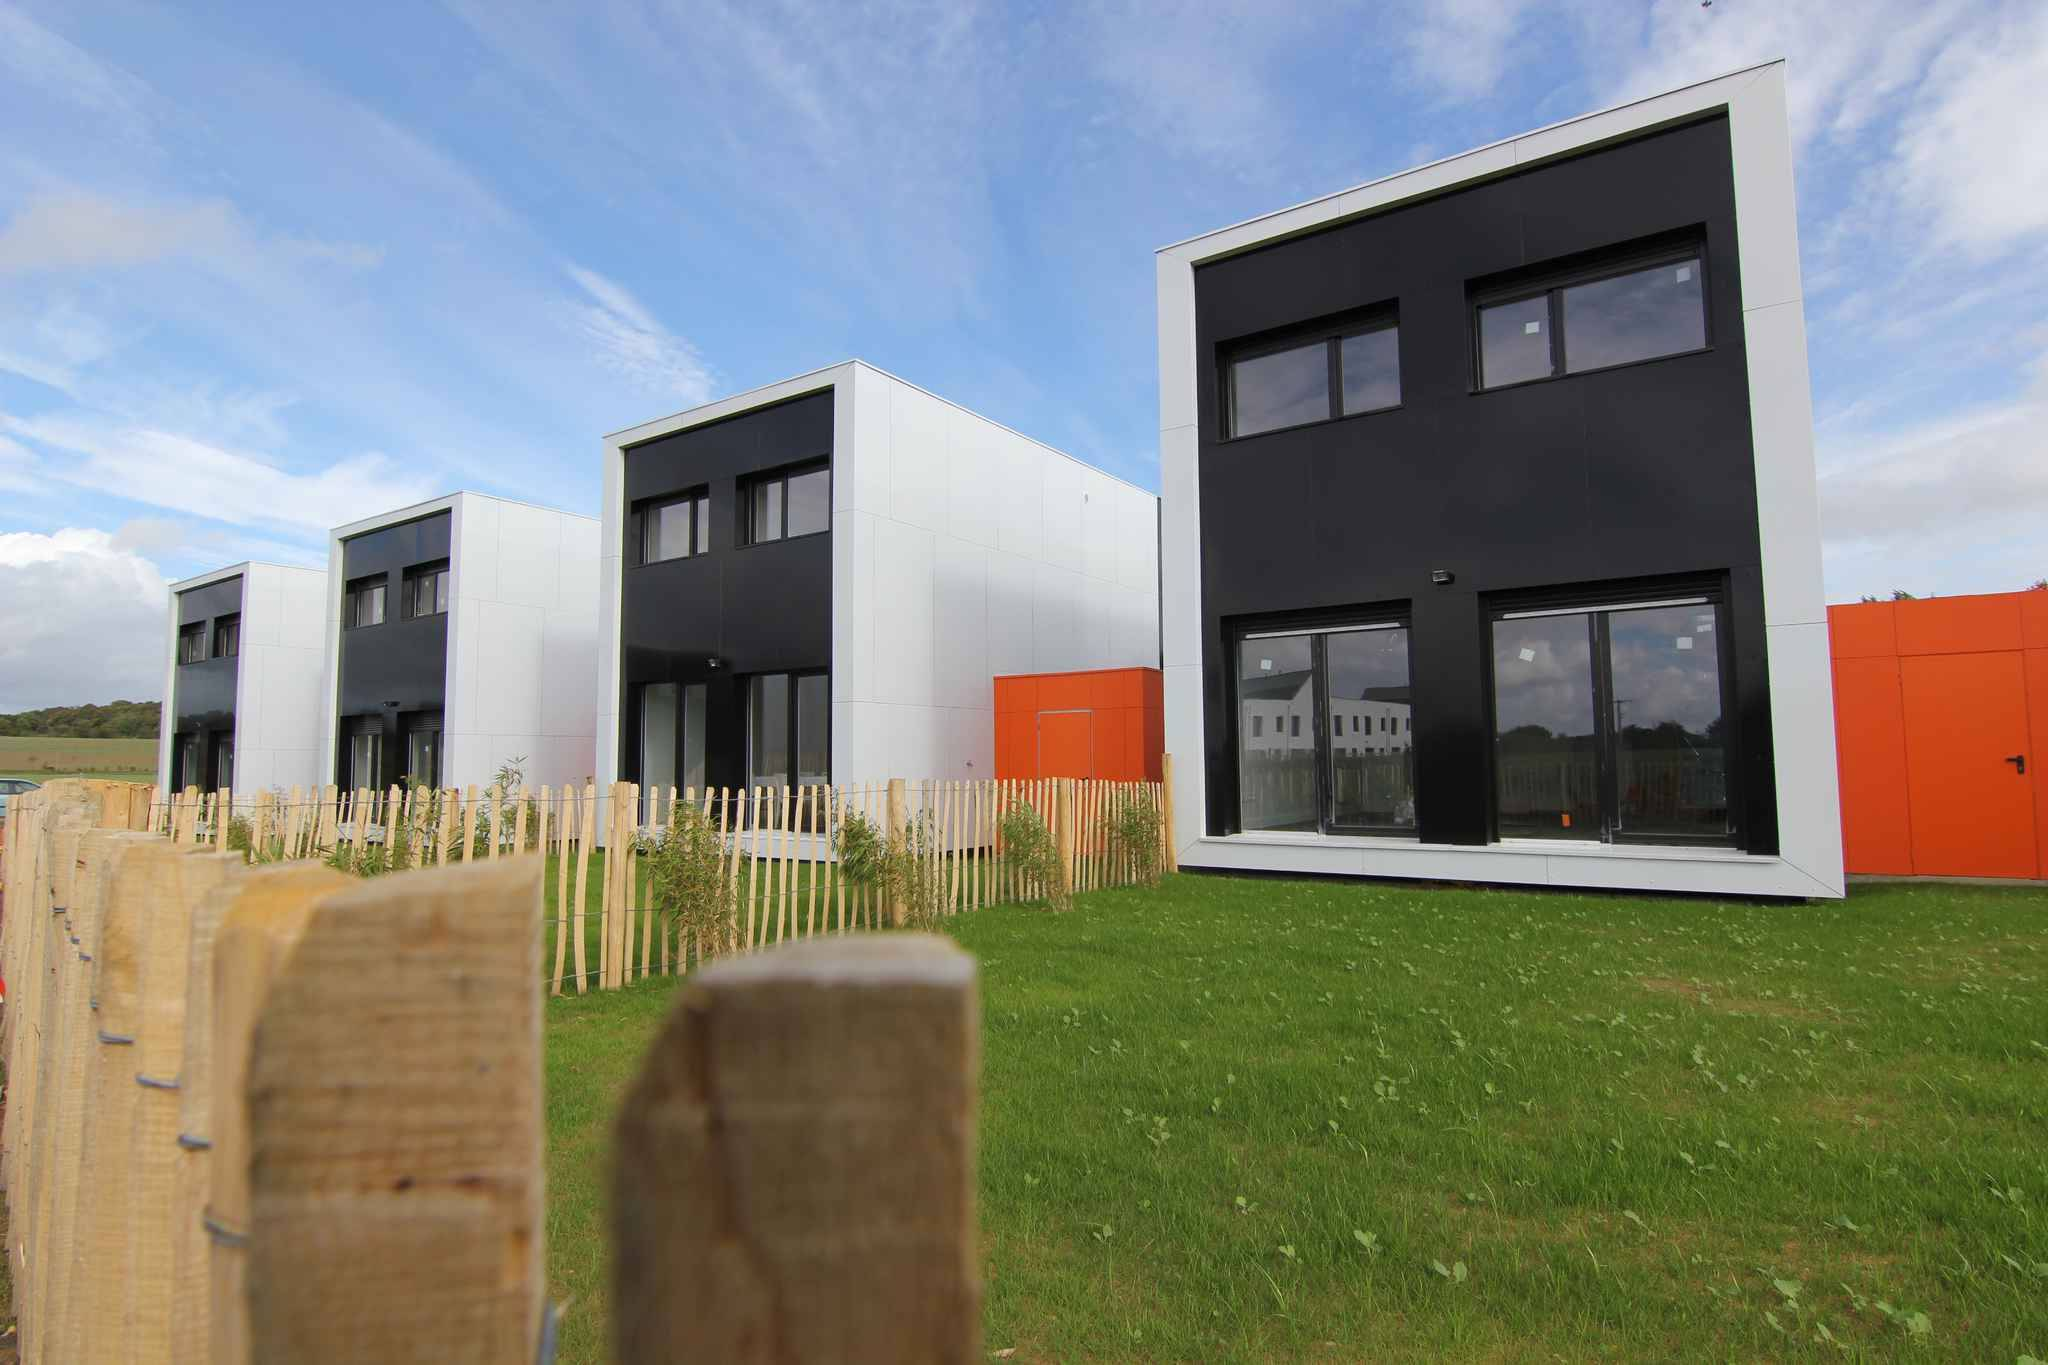 Rennes la maison container b3 ecodesign y croit dur for Maison container france prix